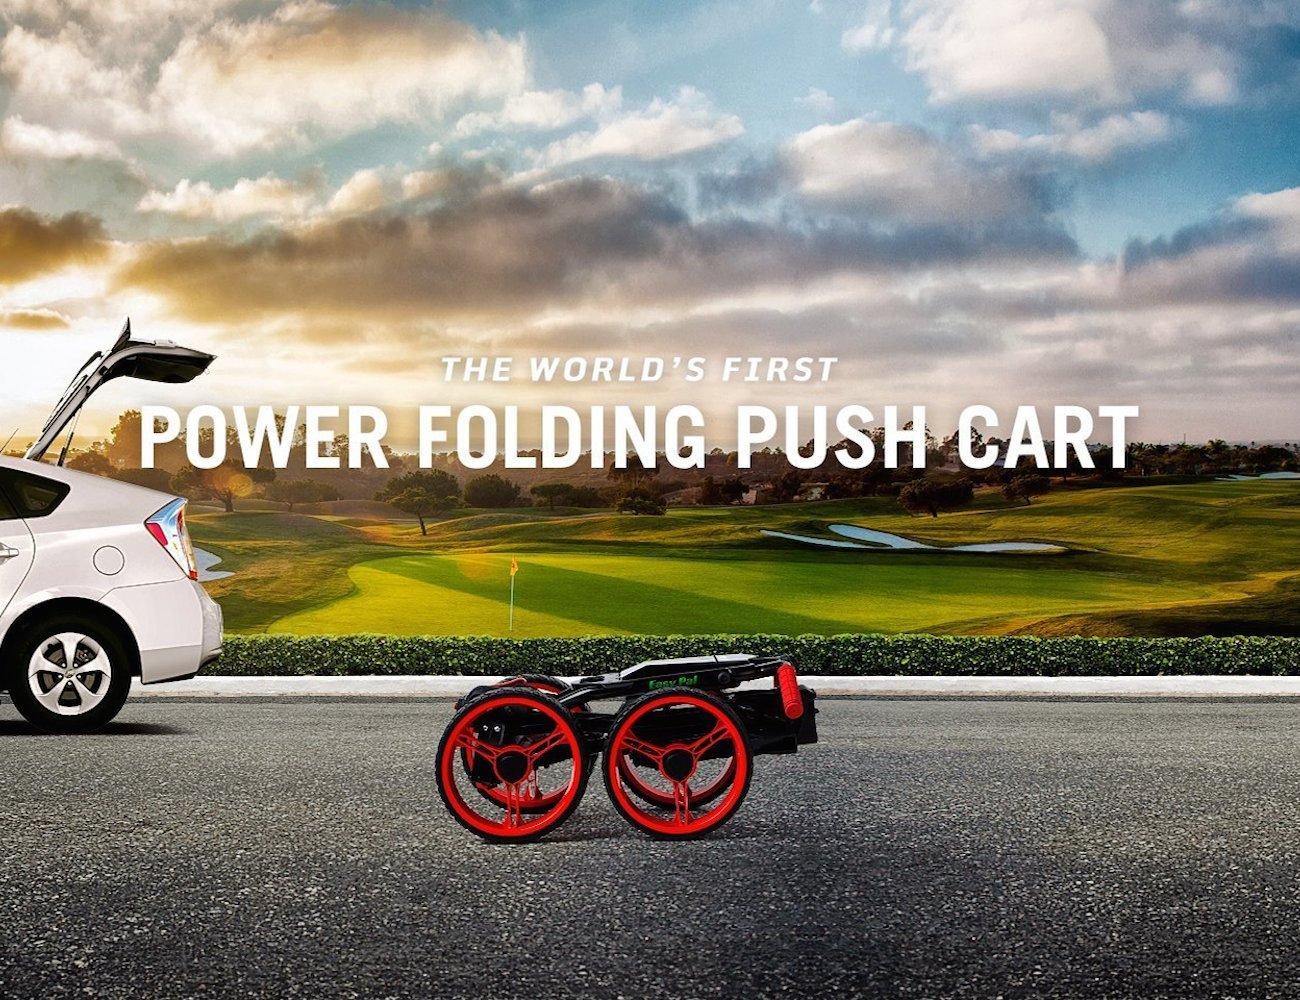 EasyPal by GolferPal Golf – World's First Electric Folding Push Cart